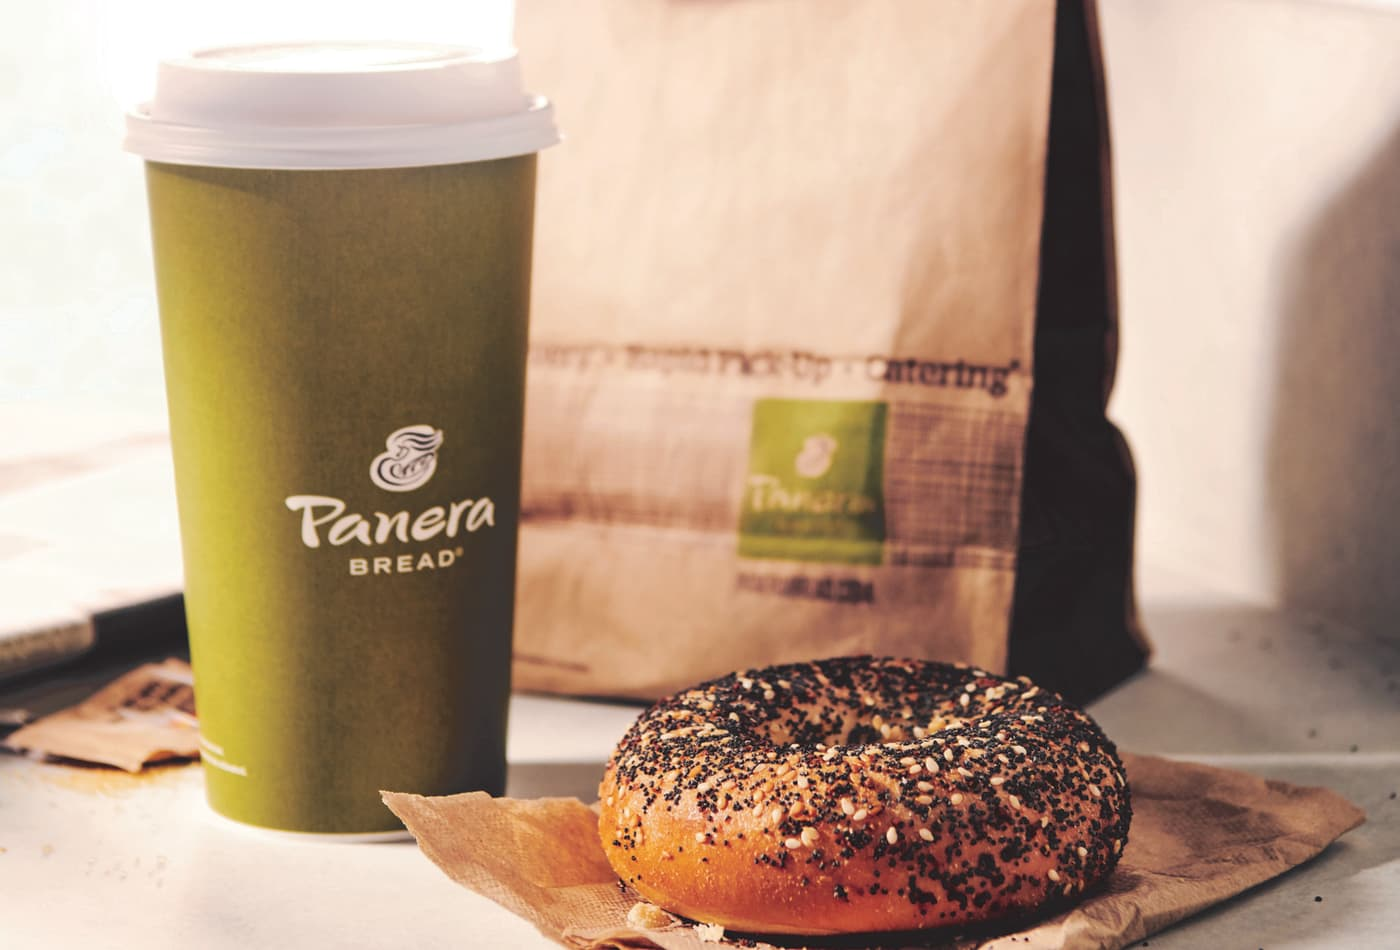 Panera Bread is launching a coffee subscription for $8.99 a month